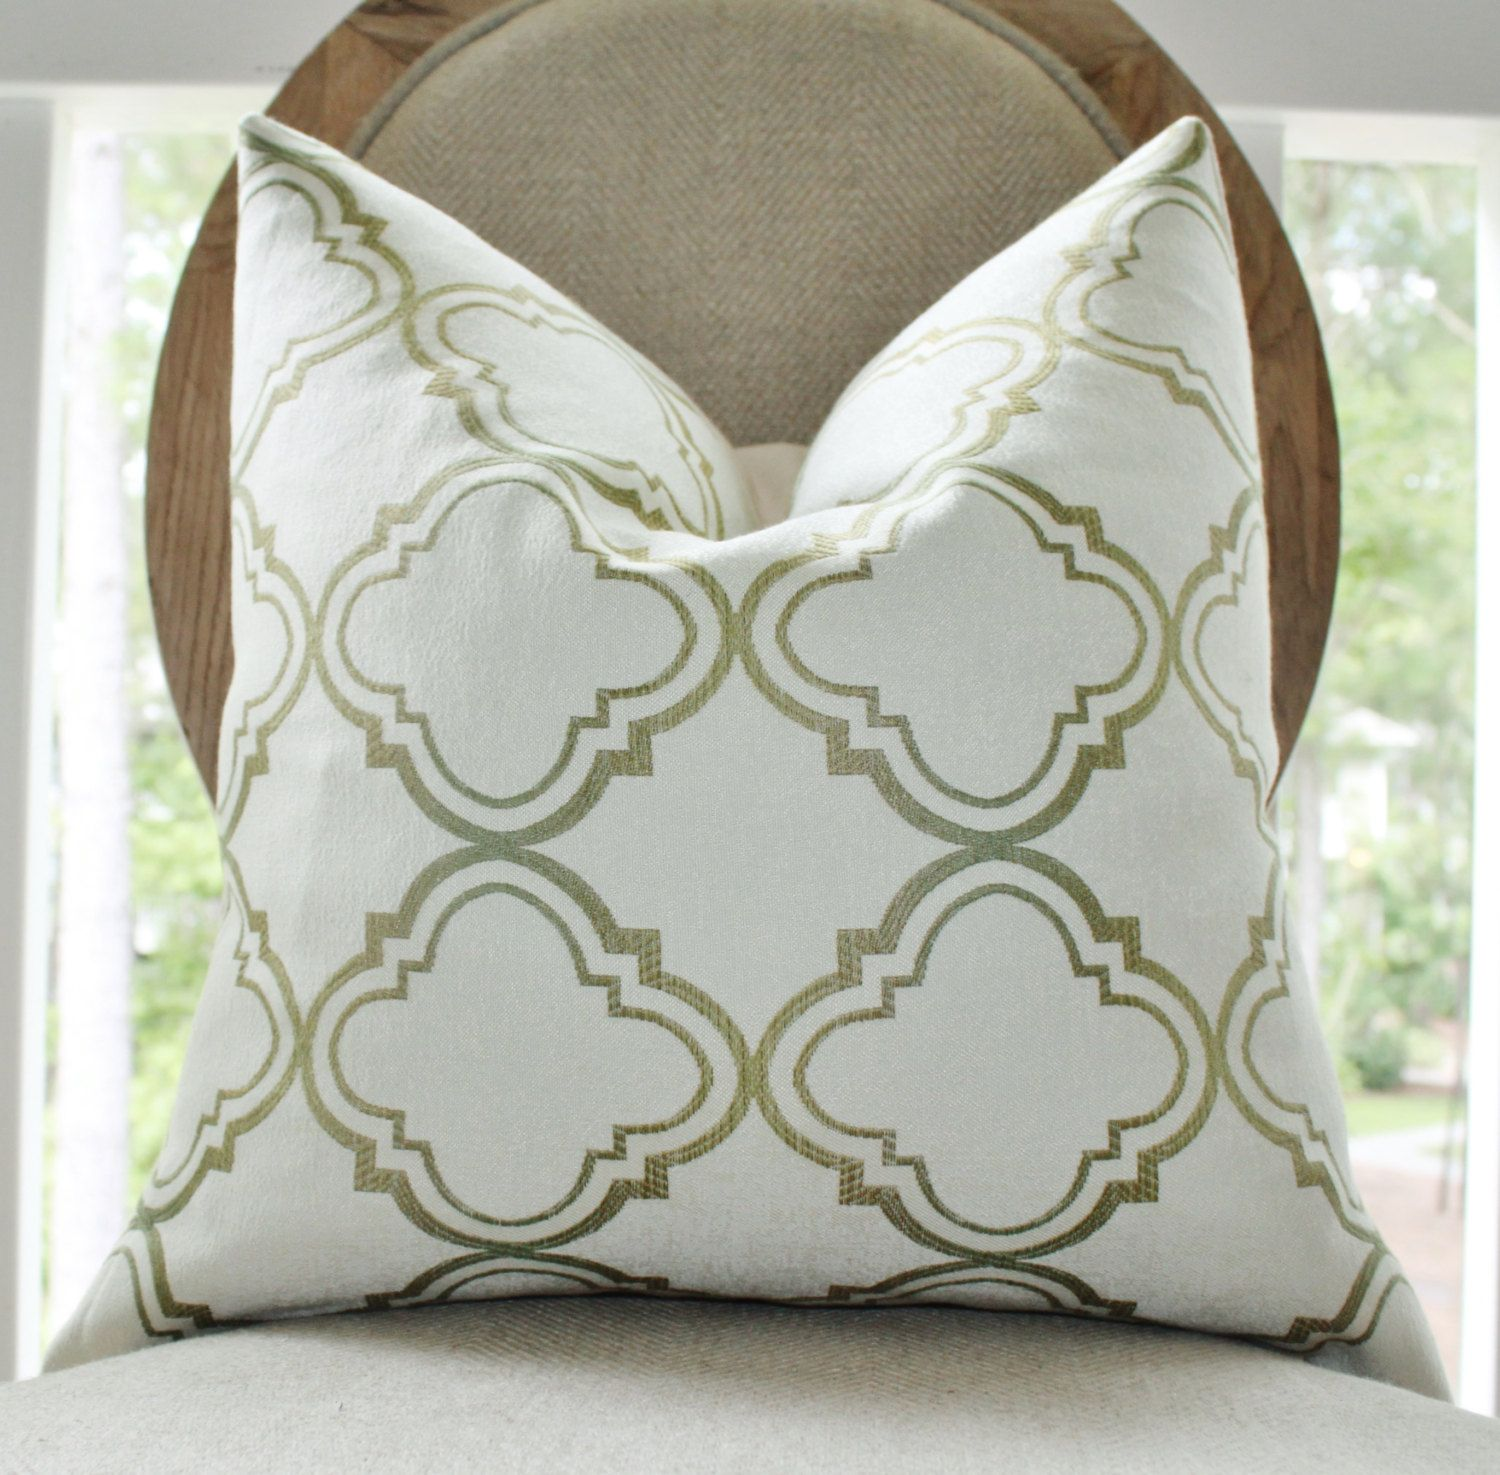 olive green decorative pillows - Google Search | Bedroom ...